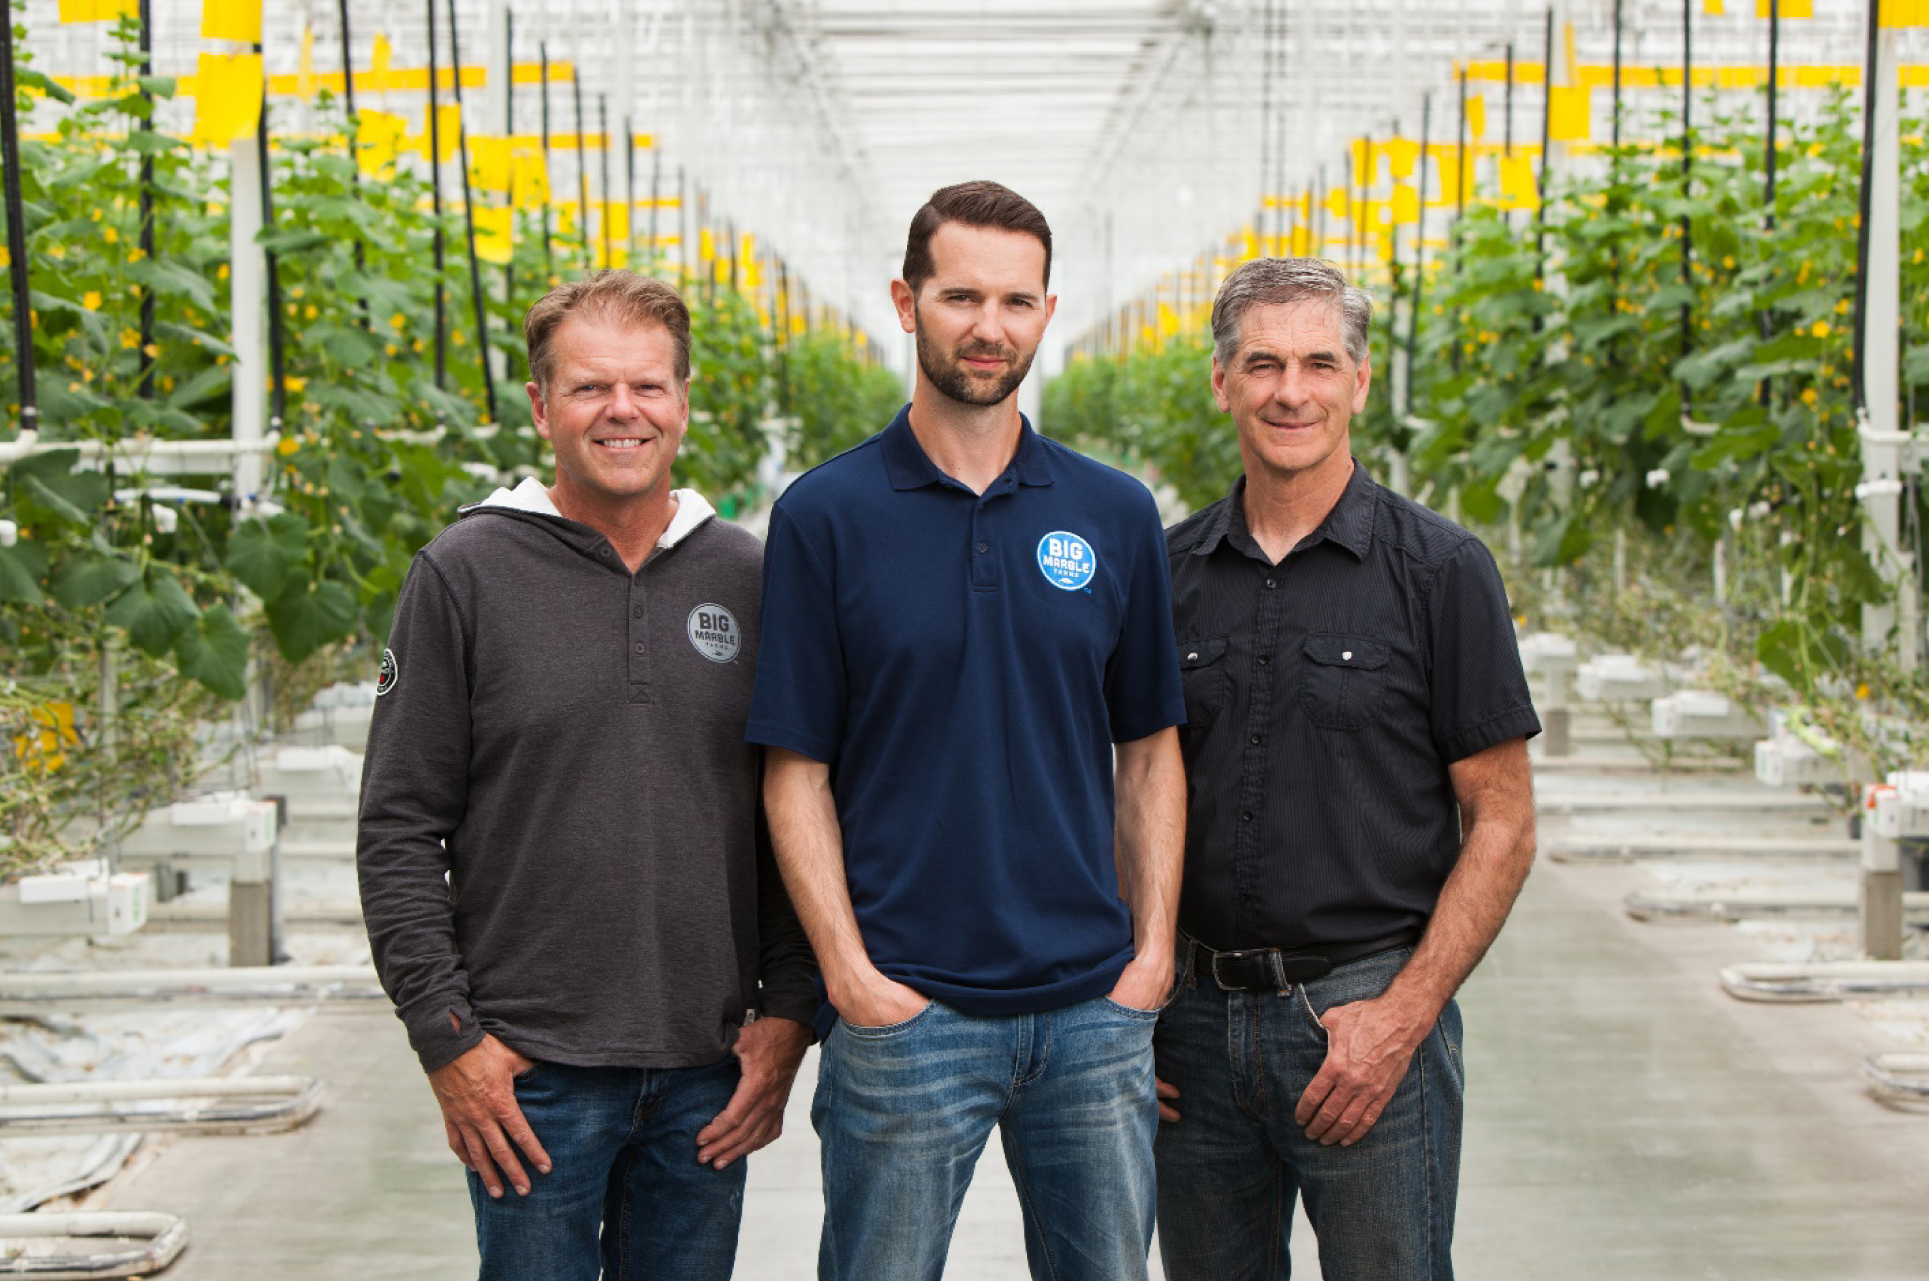 From left to right, Big Marble Farms partners Rick Wagenaar, Ryan Cramer (CEO), and Albert Cramer